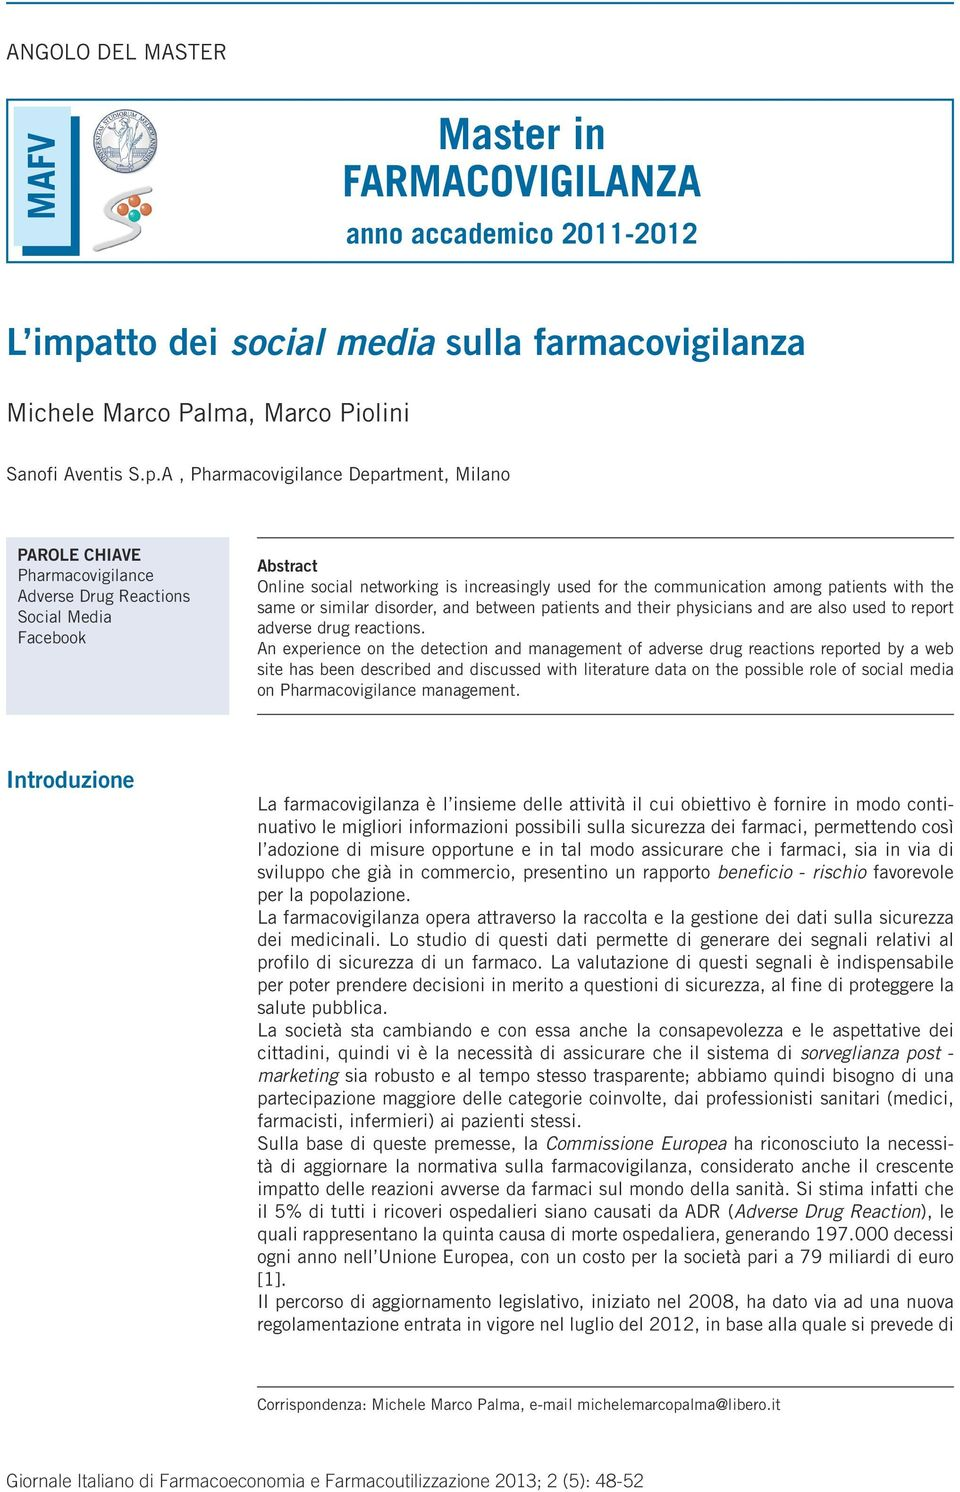 A, Pharmacovigilance Department, Milano PAROLE CHIAVE Pharmacovigilance Adverse Drug Reactions Social Media Facebook Abstract Online social networking is increasingly used for the communication among